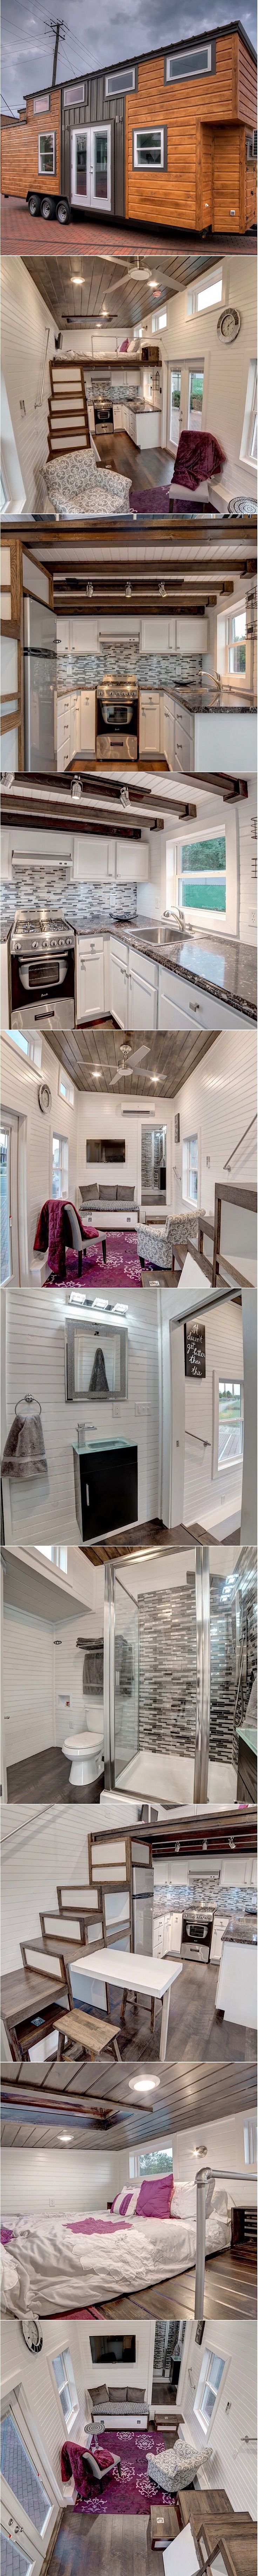 "The Freedom Tiny House  @altinyhomes This charming tiny house on wheels is designed and built by Alabama Tiny Homes of Mount Olive, AL. Named the ""Freedom"", the home measures 304 sq ft and comes with a plethora of features to make you feel right at home. The Freedom comes with two LCD televisions; one […]"